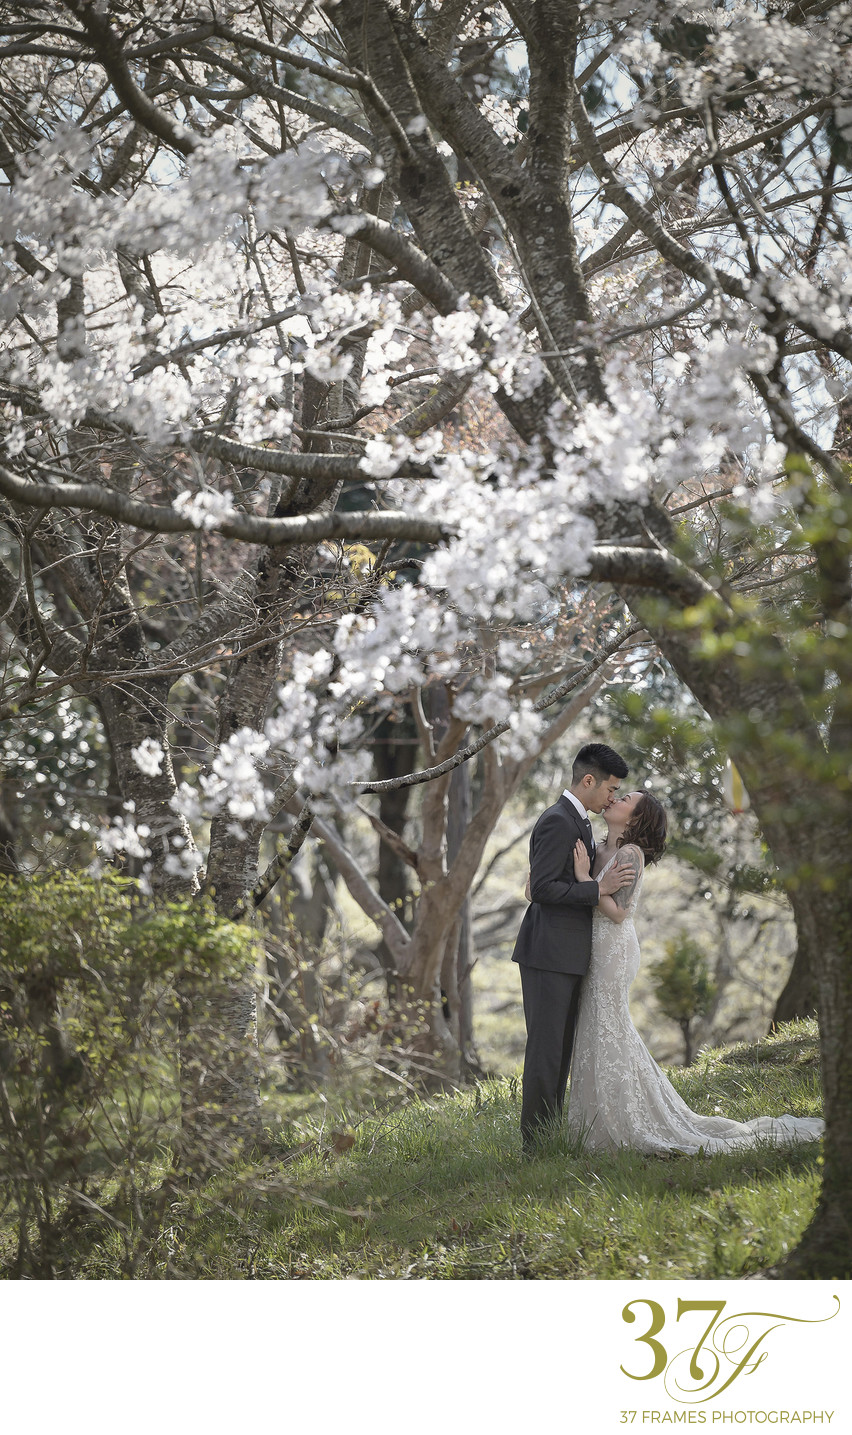 Adventure Elopements in the Cherry Blossoms